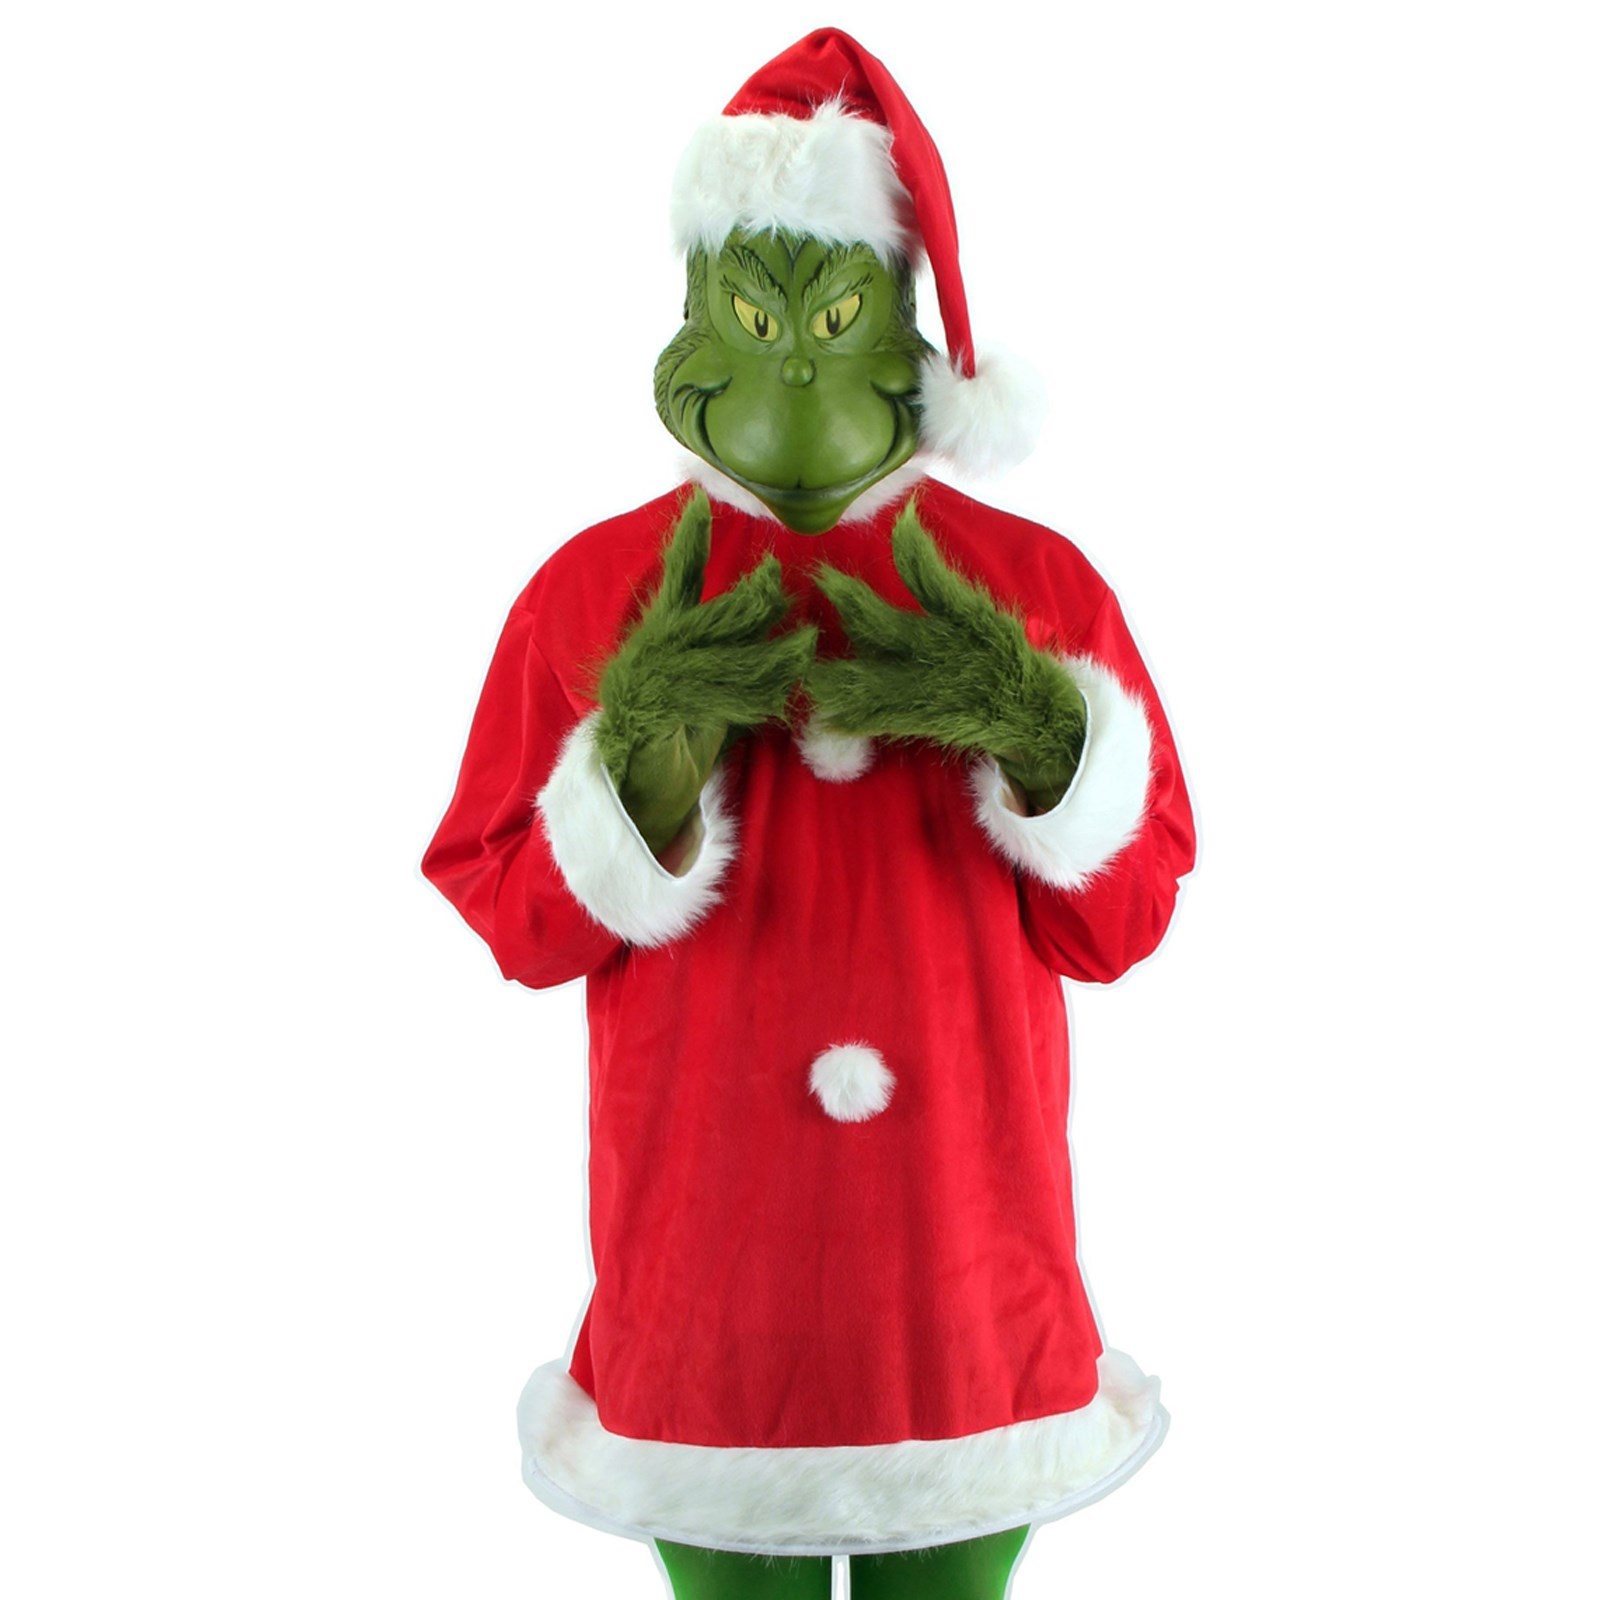 How to make your own grinch costume - How The Grinch Stole Christmas The Grinch Deluxe Adult Costume